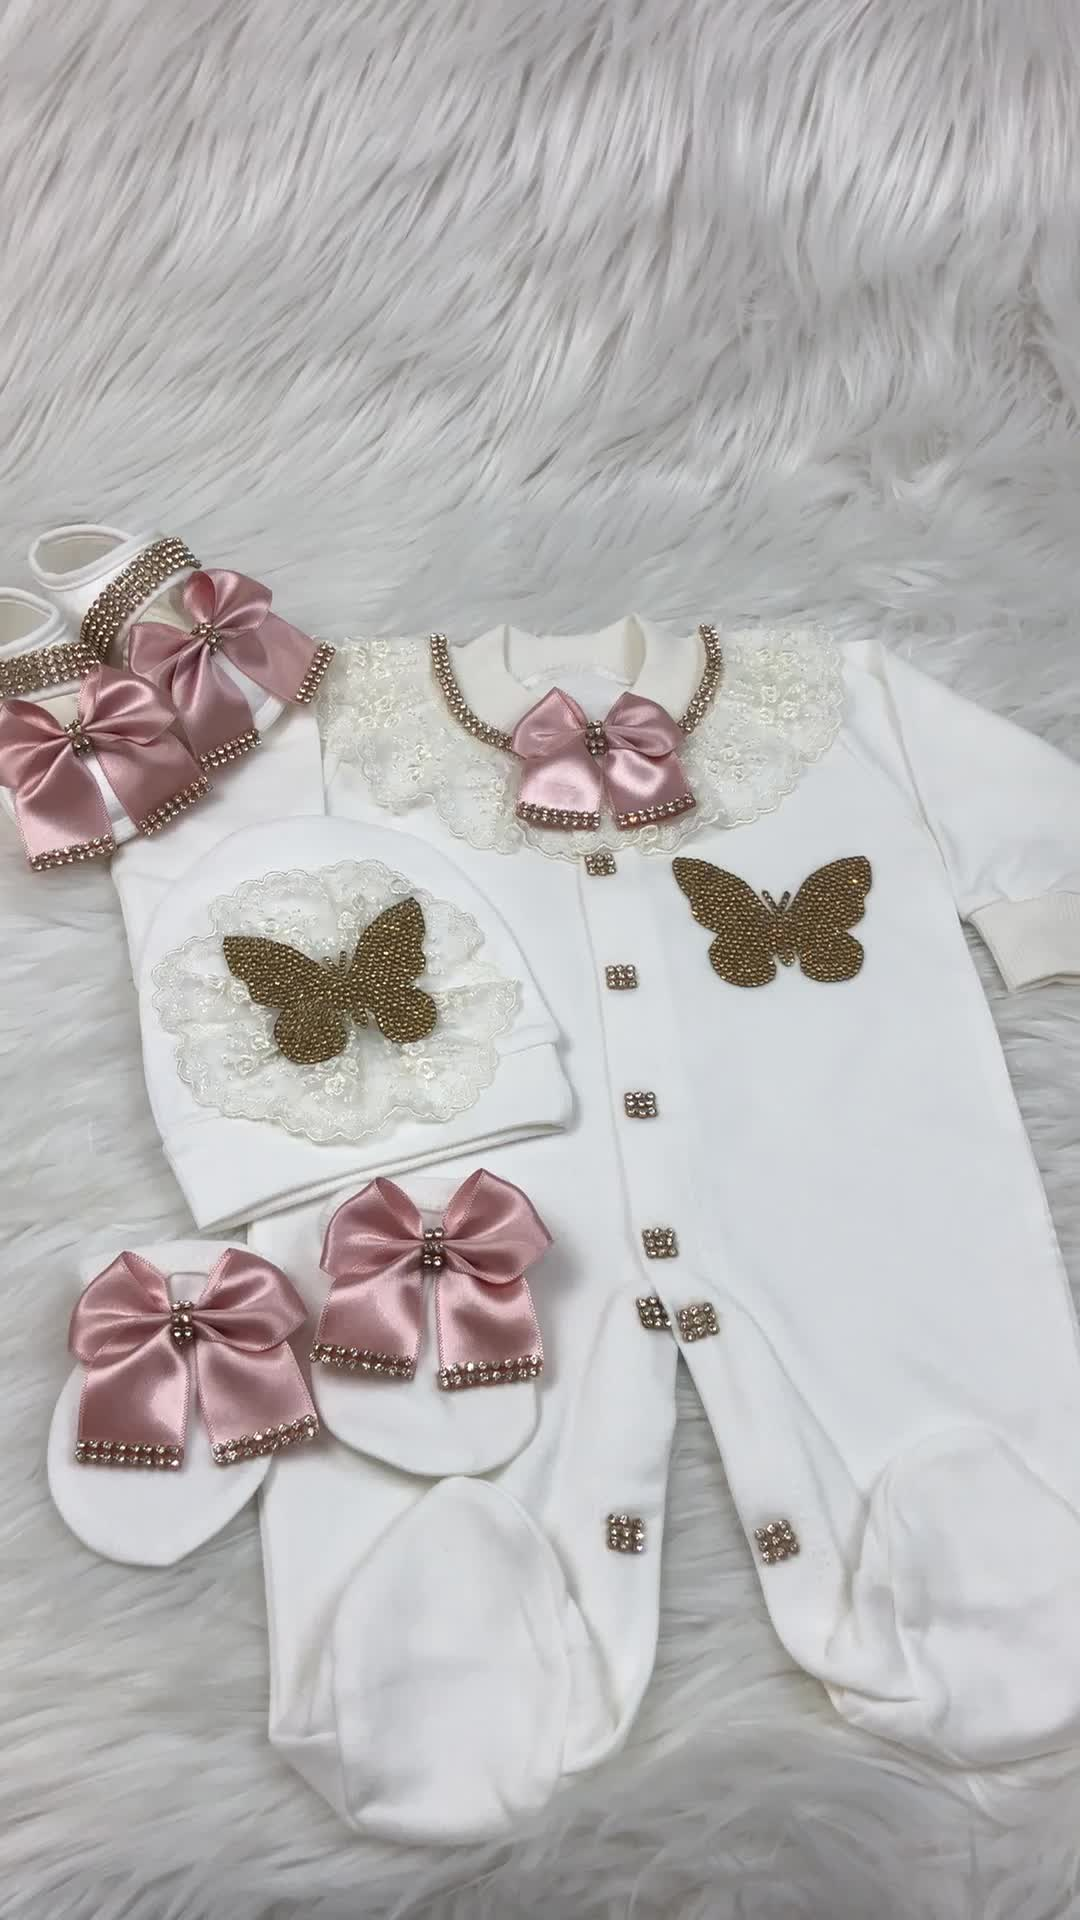 1ad2c3bb540 4 Pieces Baby Romper Set Butterfly Blush Gold New Born To 12 Month ...